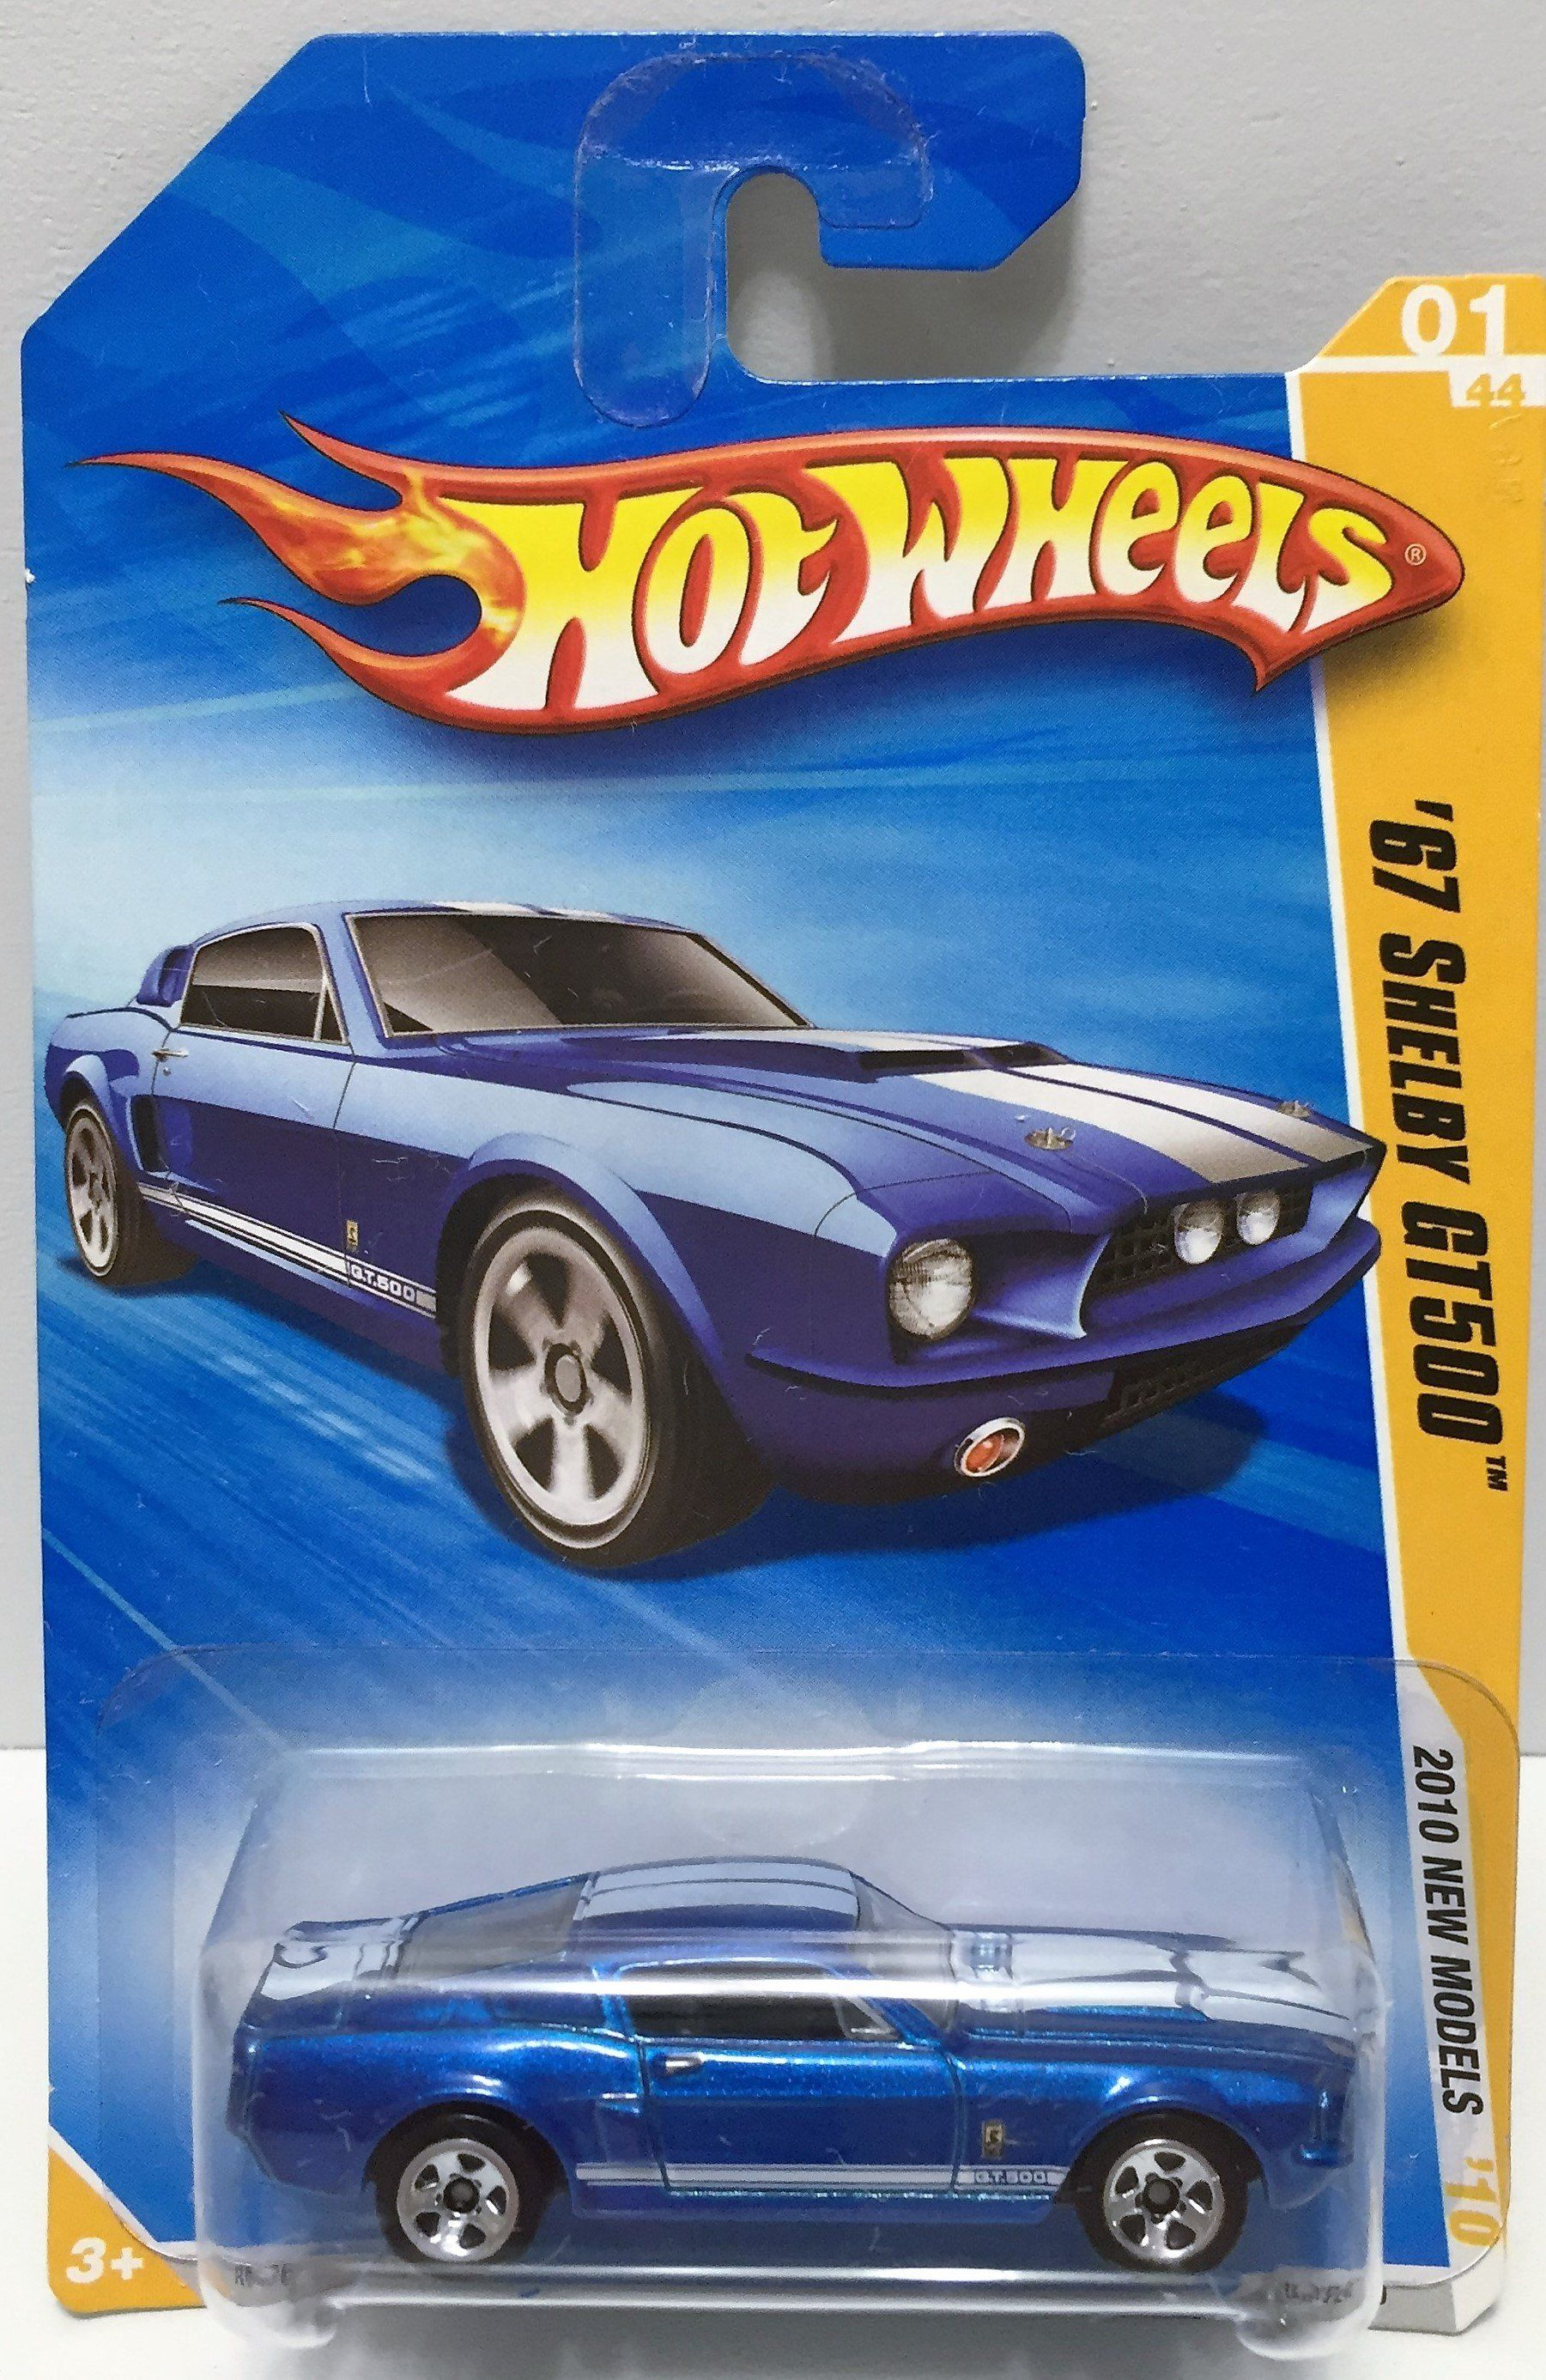 Tas037137 2009 Mattel Hot Wheels 67 Shelby Mustang Gt500 Hot Wheels Mattel Hot Wheels Shelby Mustang Gt500